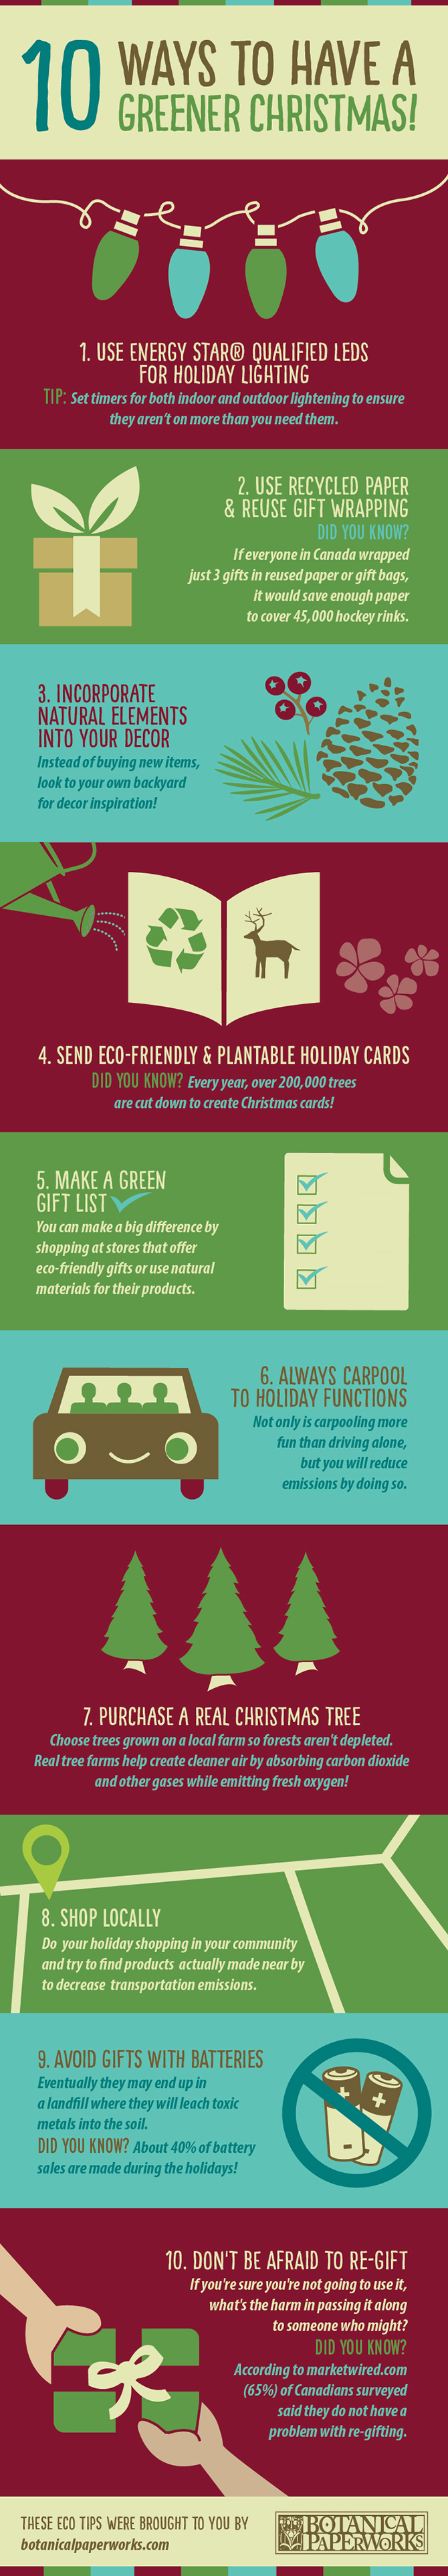 Have-A-Green-Christmas-Infographic.jpg